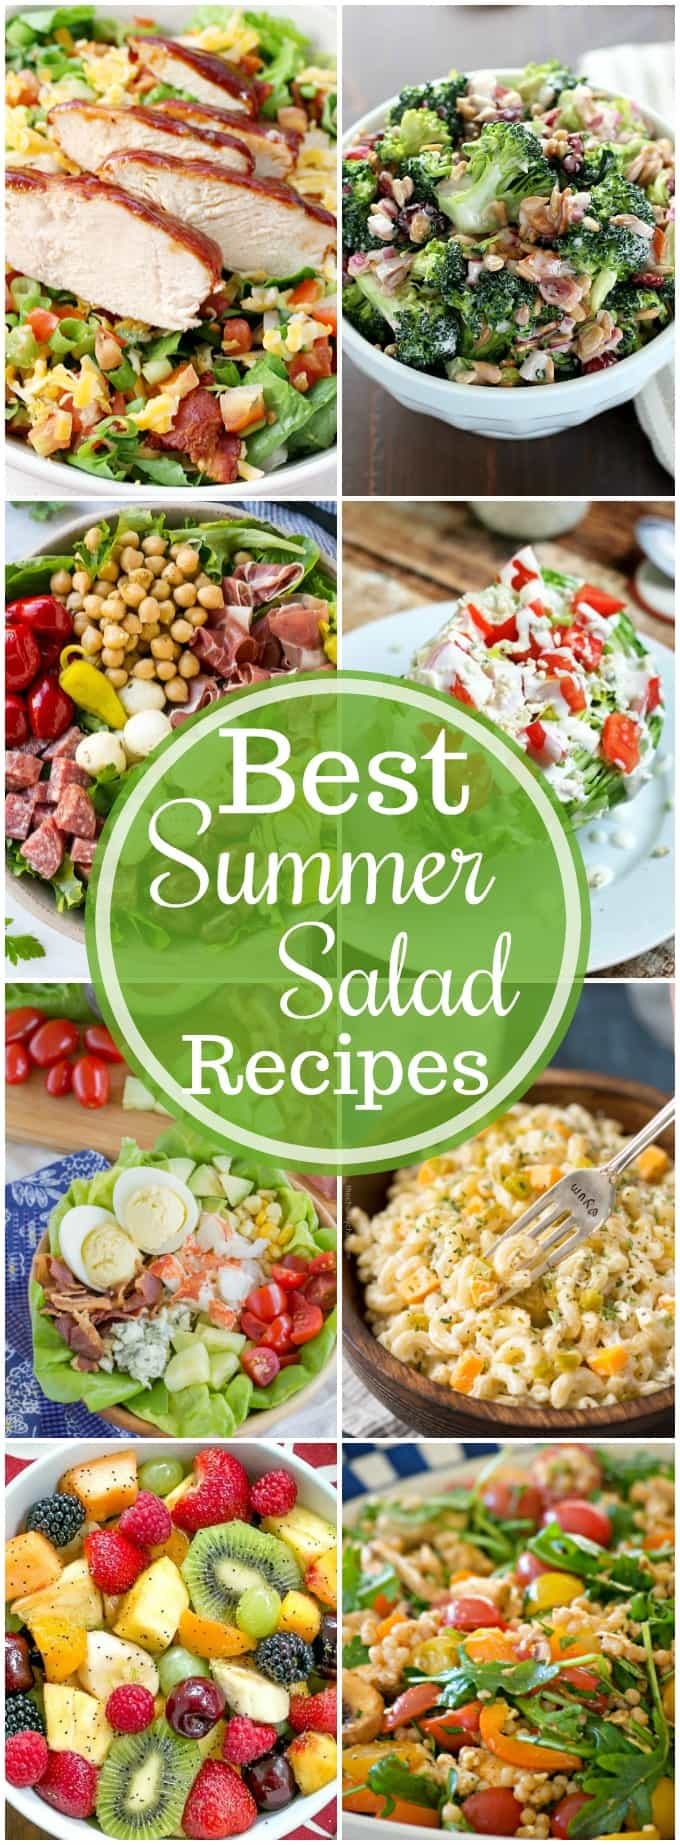 Summer salad recipes are essential when it comes to potlucks and bbs! You'll find a salad here that everyone will love!